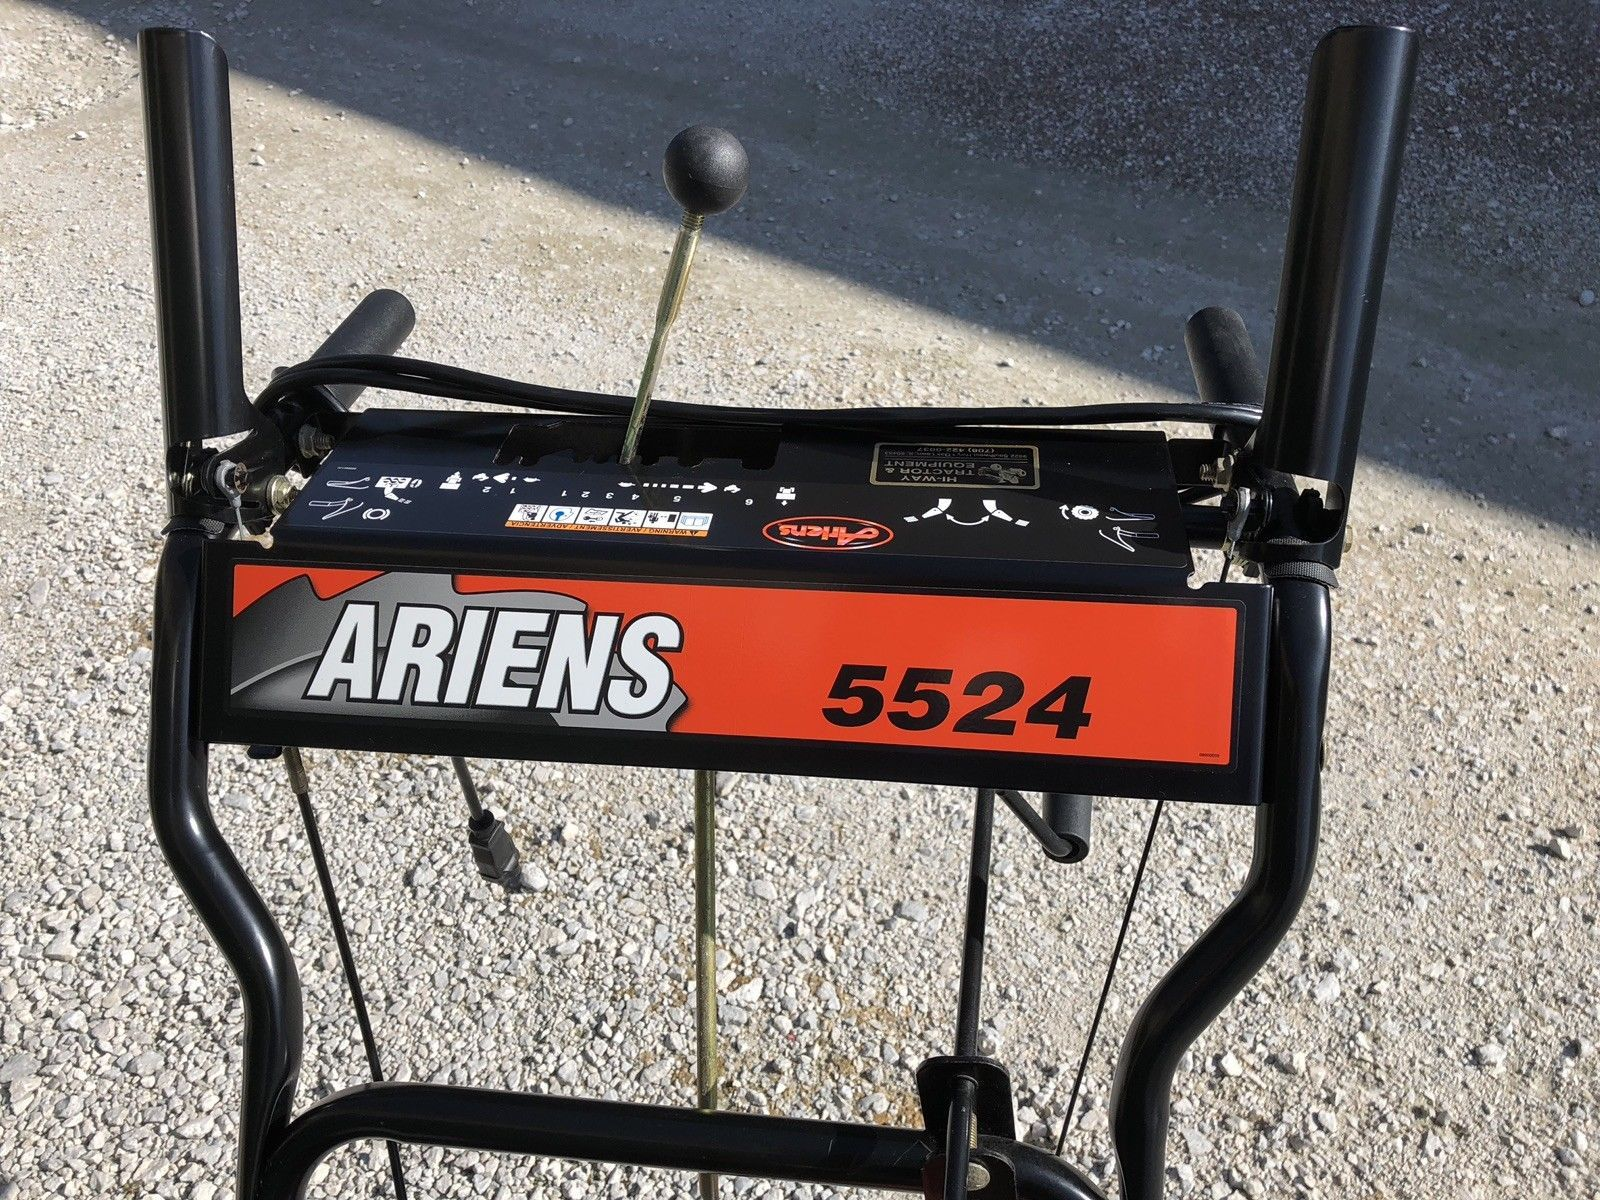 Ariens snowblower two stage electric start excellent